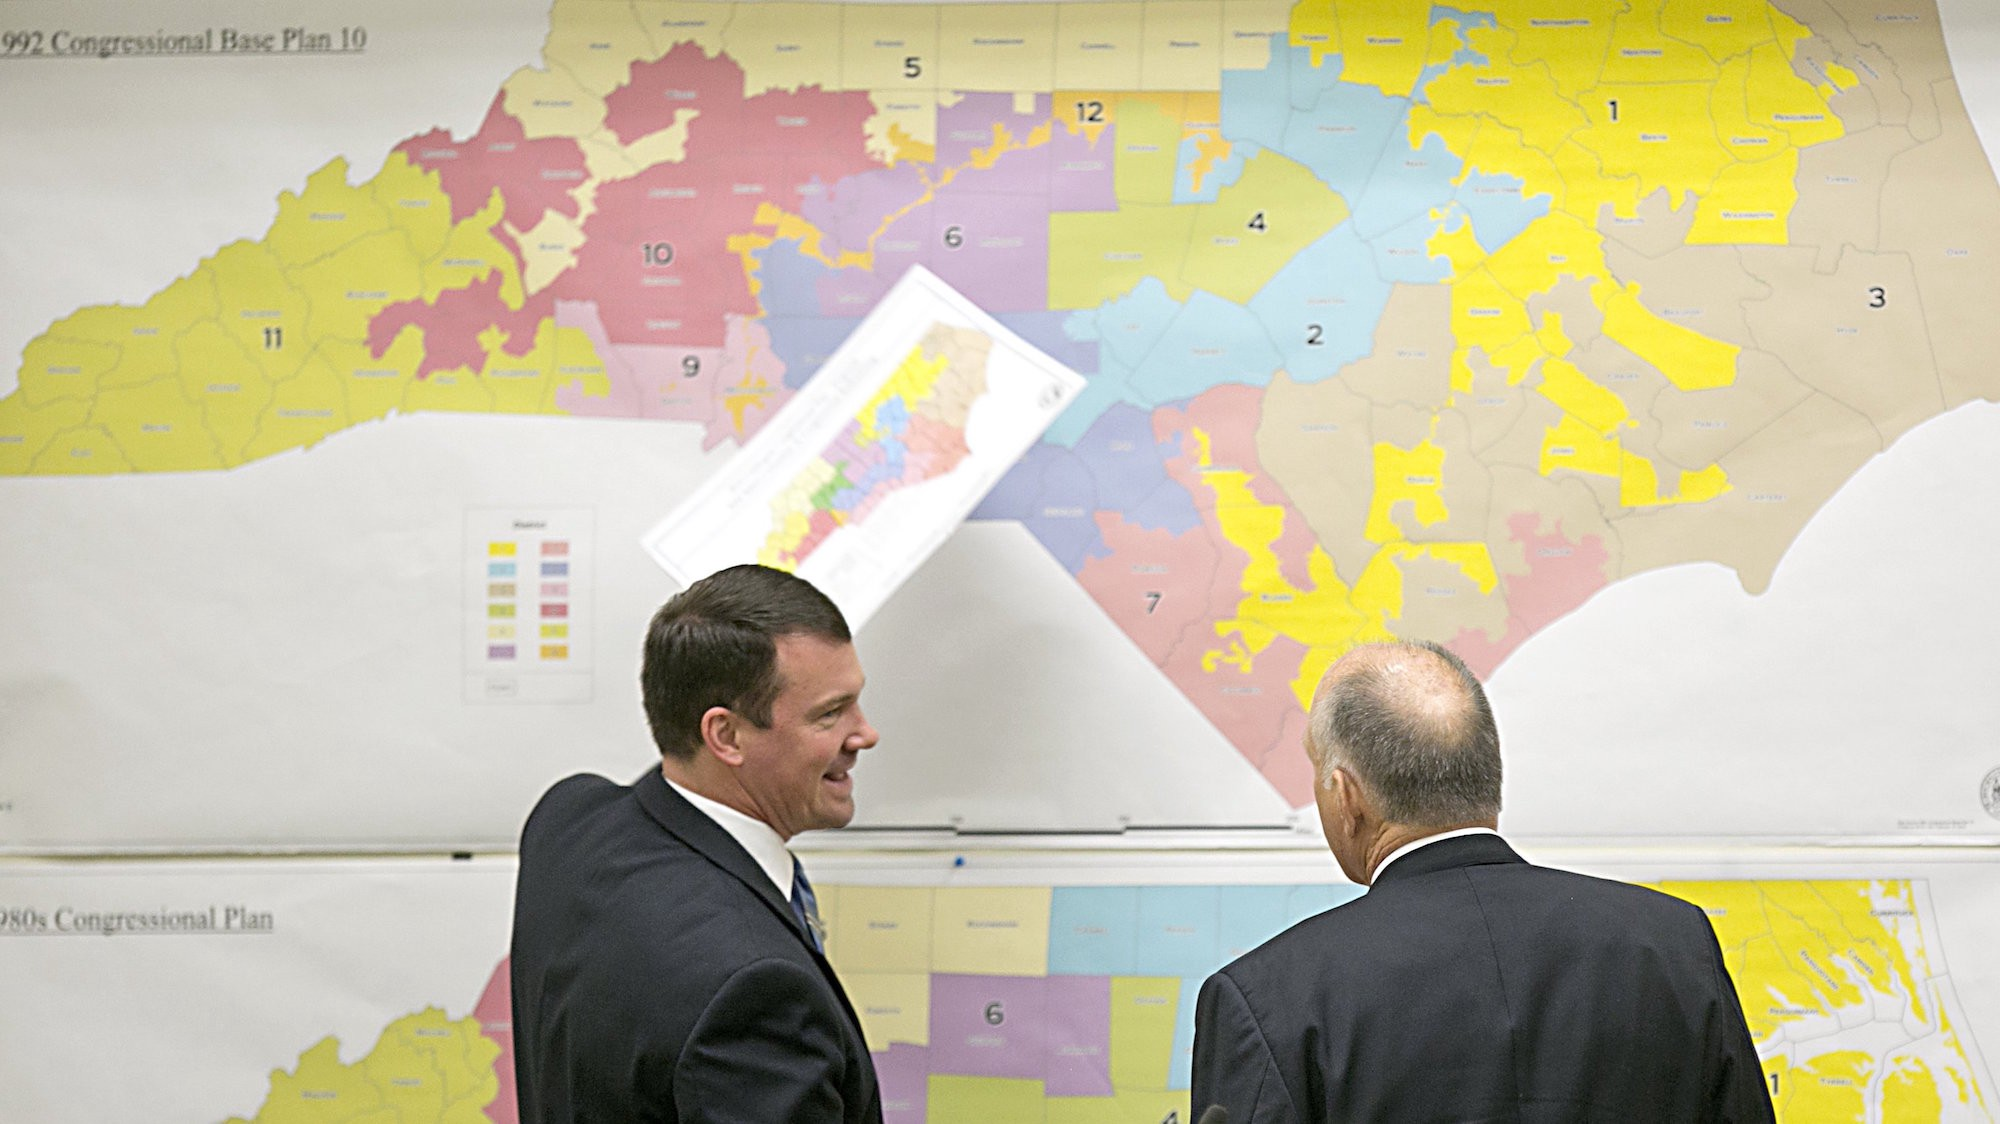 North Carolina State Senators Dan Soucek Left And Brent Jackson Right Review Historical Maps Of The State On Feb 16 In Raleigh N C Corey